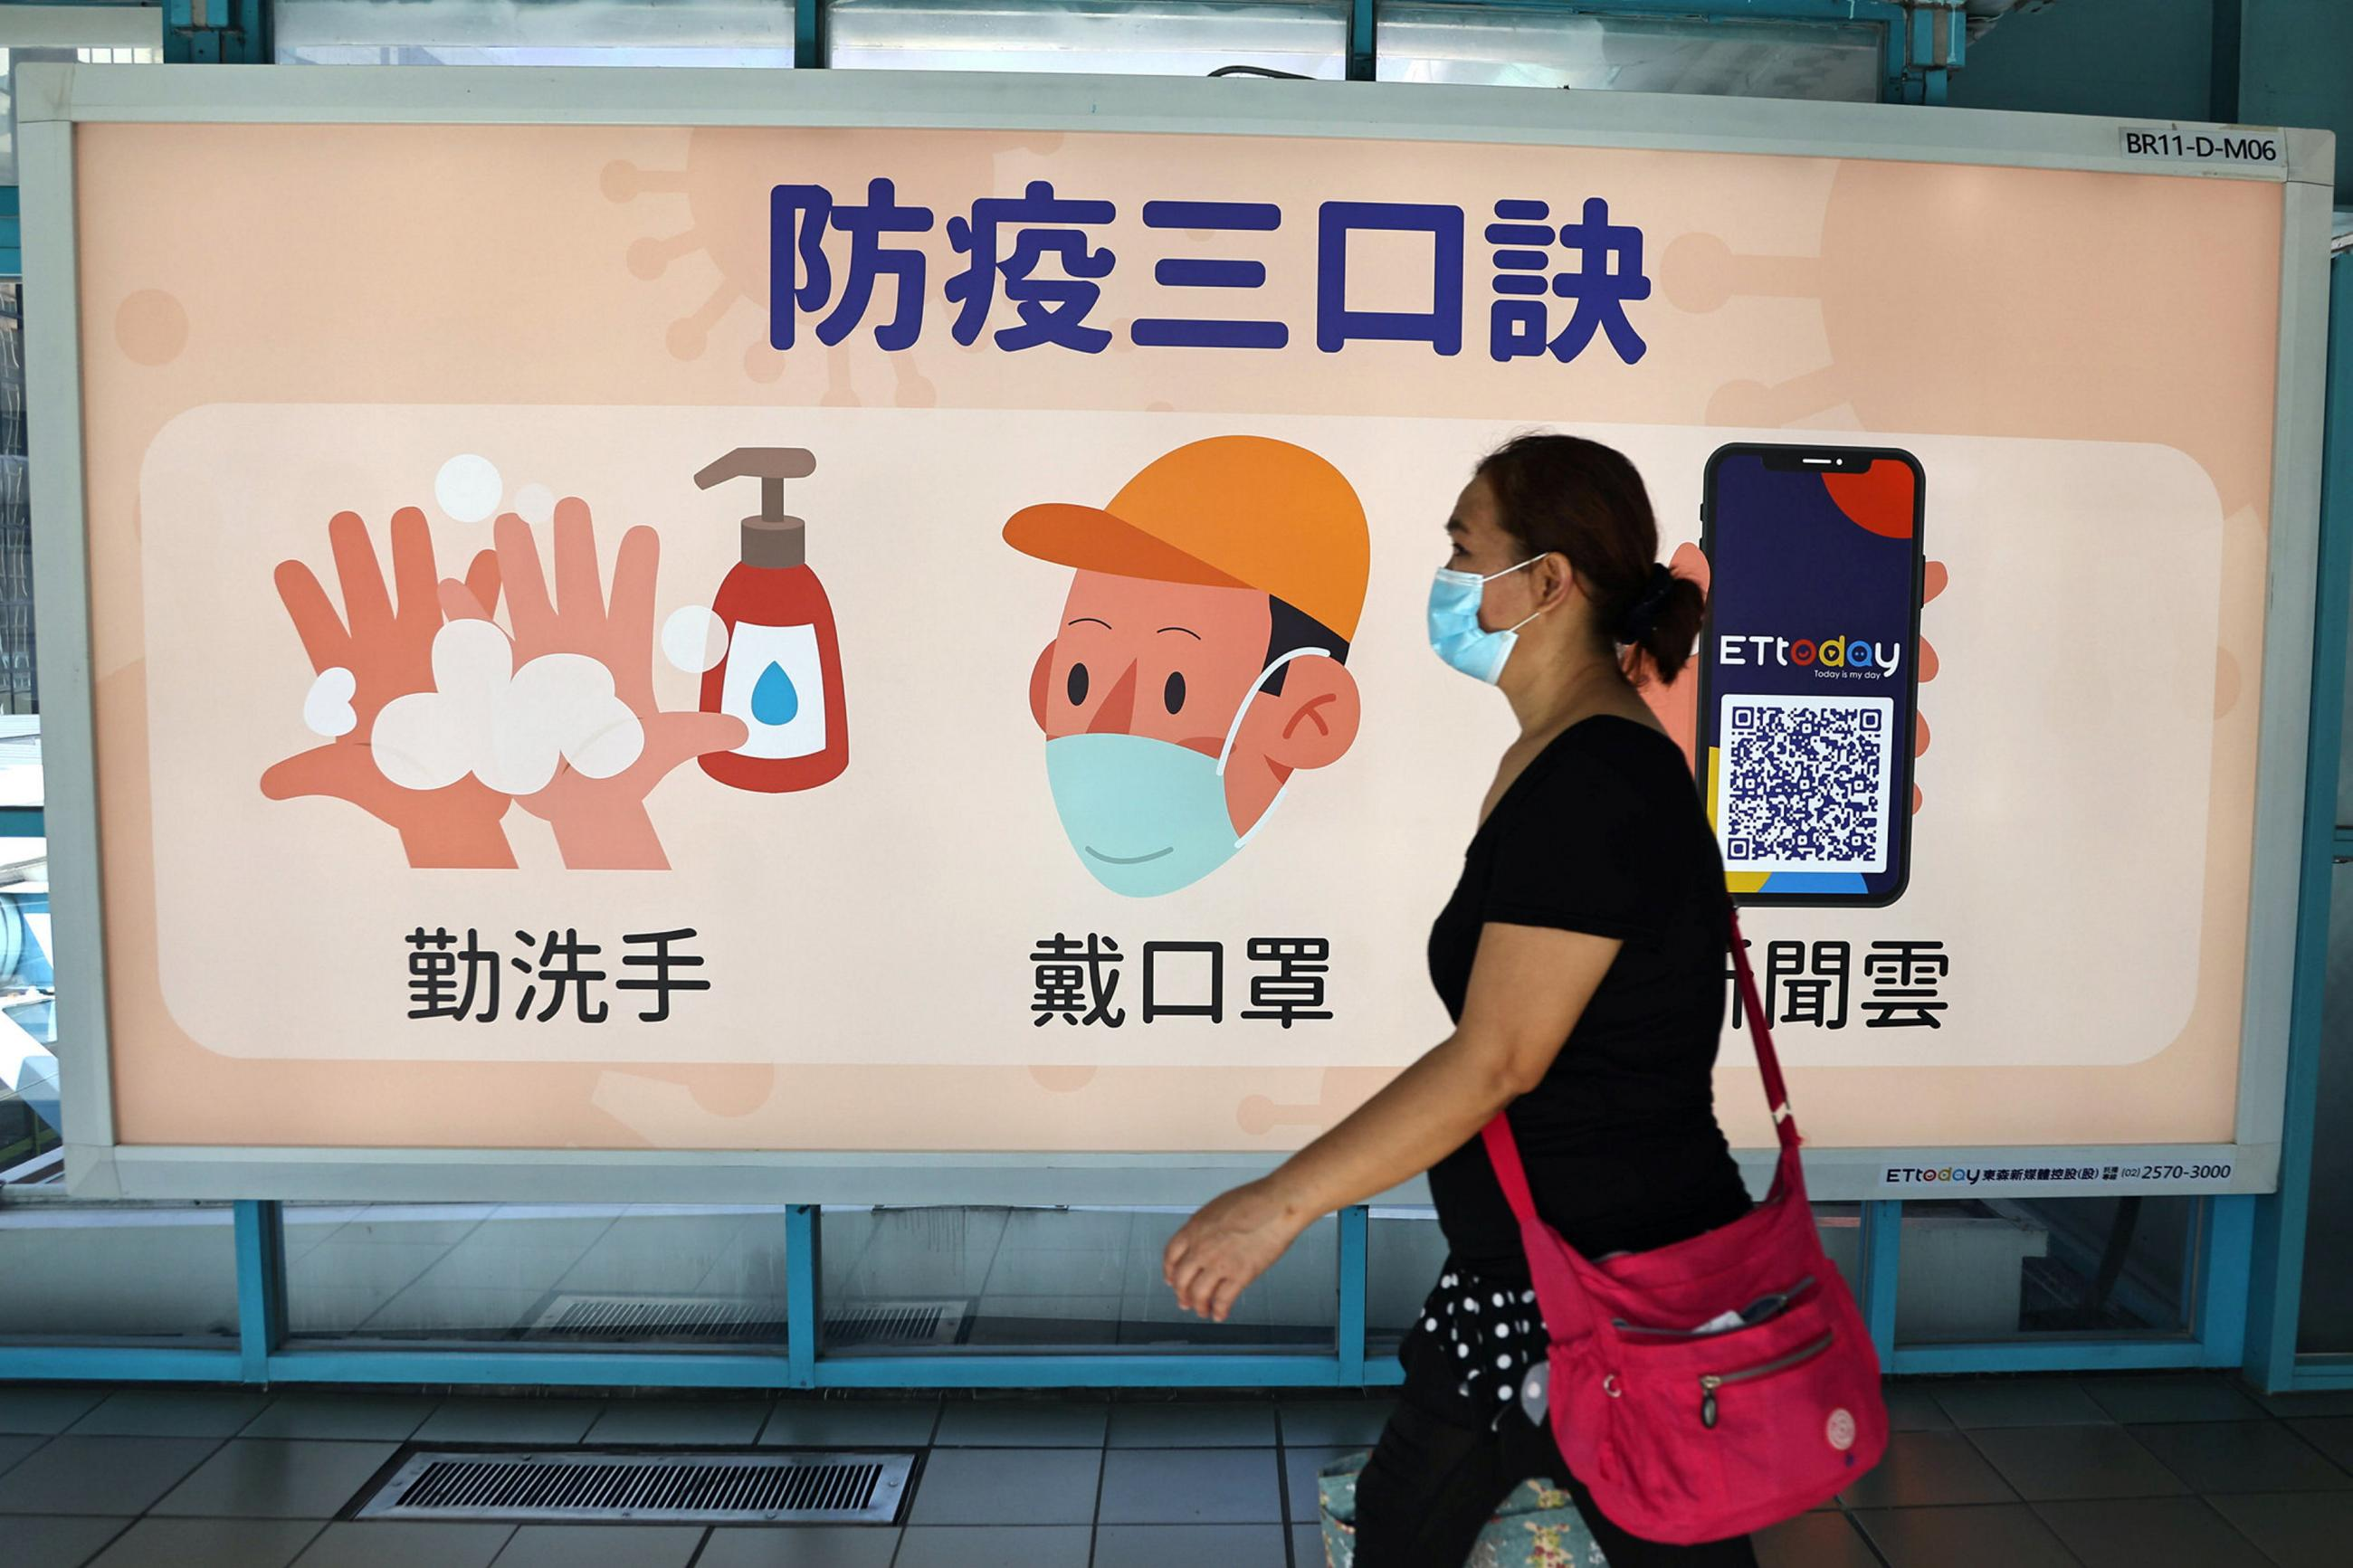 A woman wears a face mask at a metro station during the global outbreak of the coronavirus disease (COVID-19) in Taipei, Taiwan, November 18, 2020.